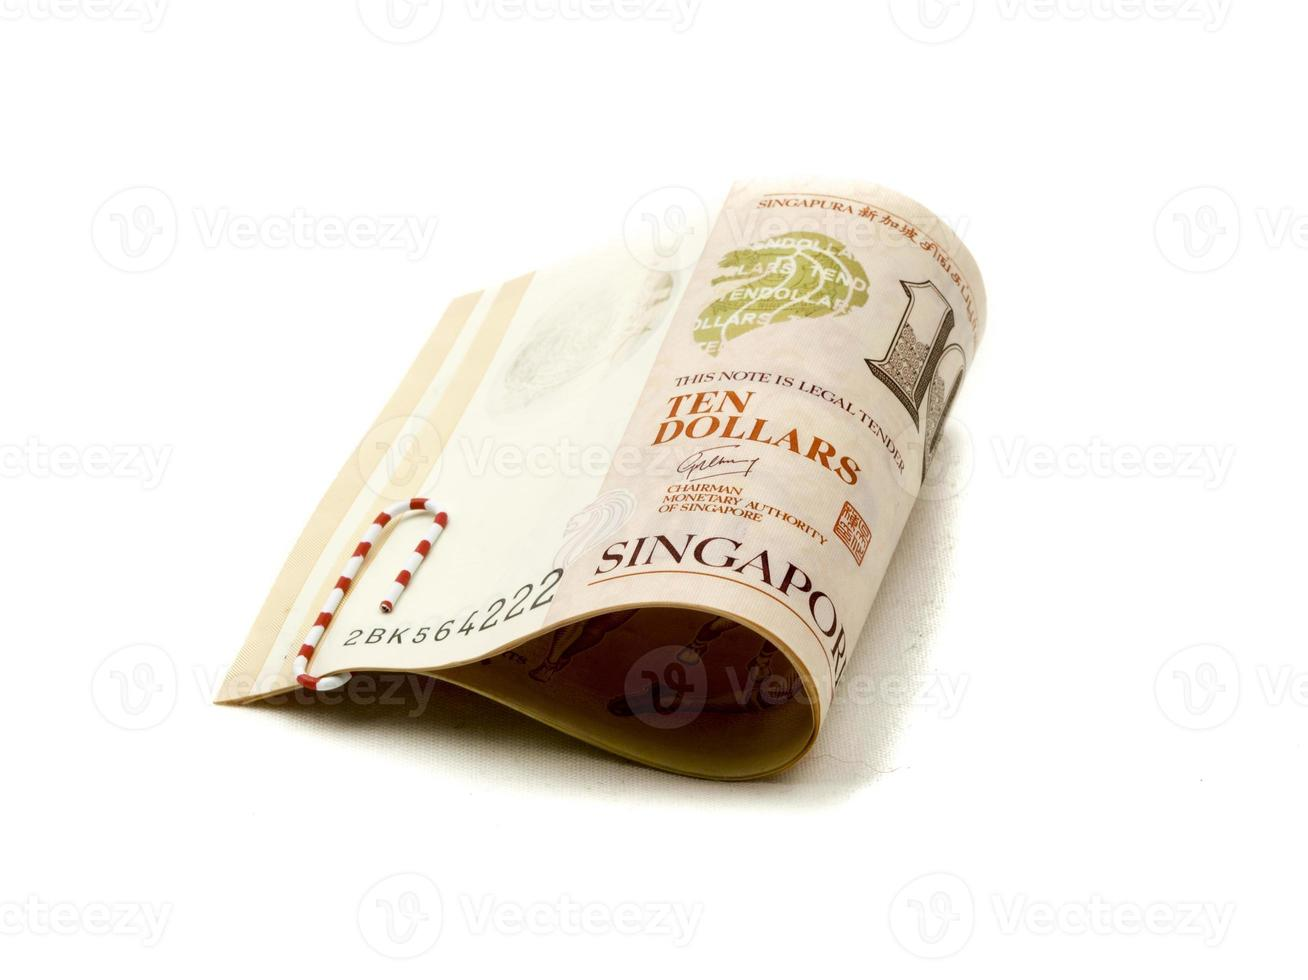 Singapore Dollars Cash Paper Bank Note. Asian monetary currency. photo